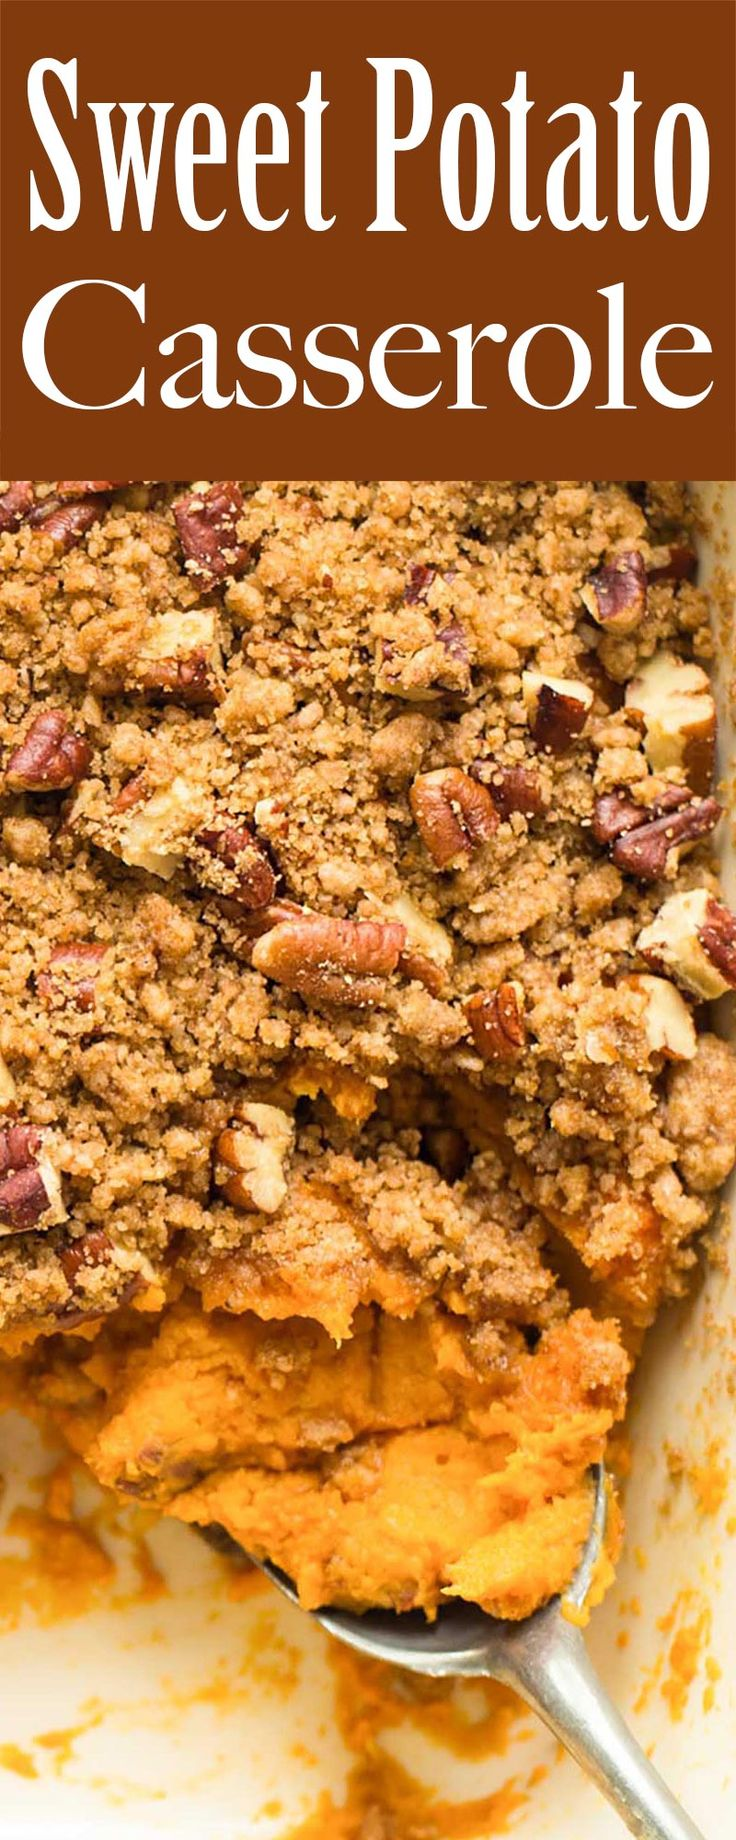 This Sweet Potato Casserole with crunchy pecan nut crumble topping is a winner! Perfect side for Thanksgiving or holiday dinner.